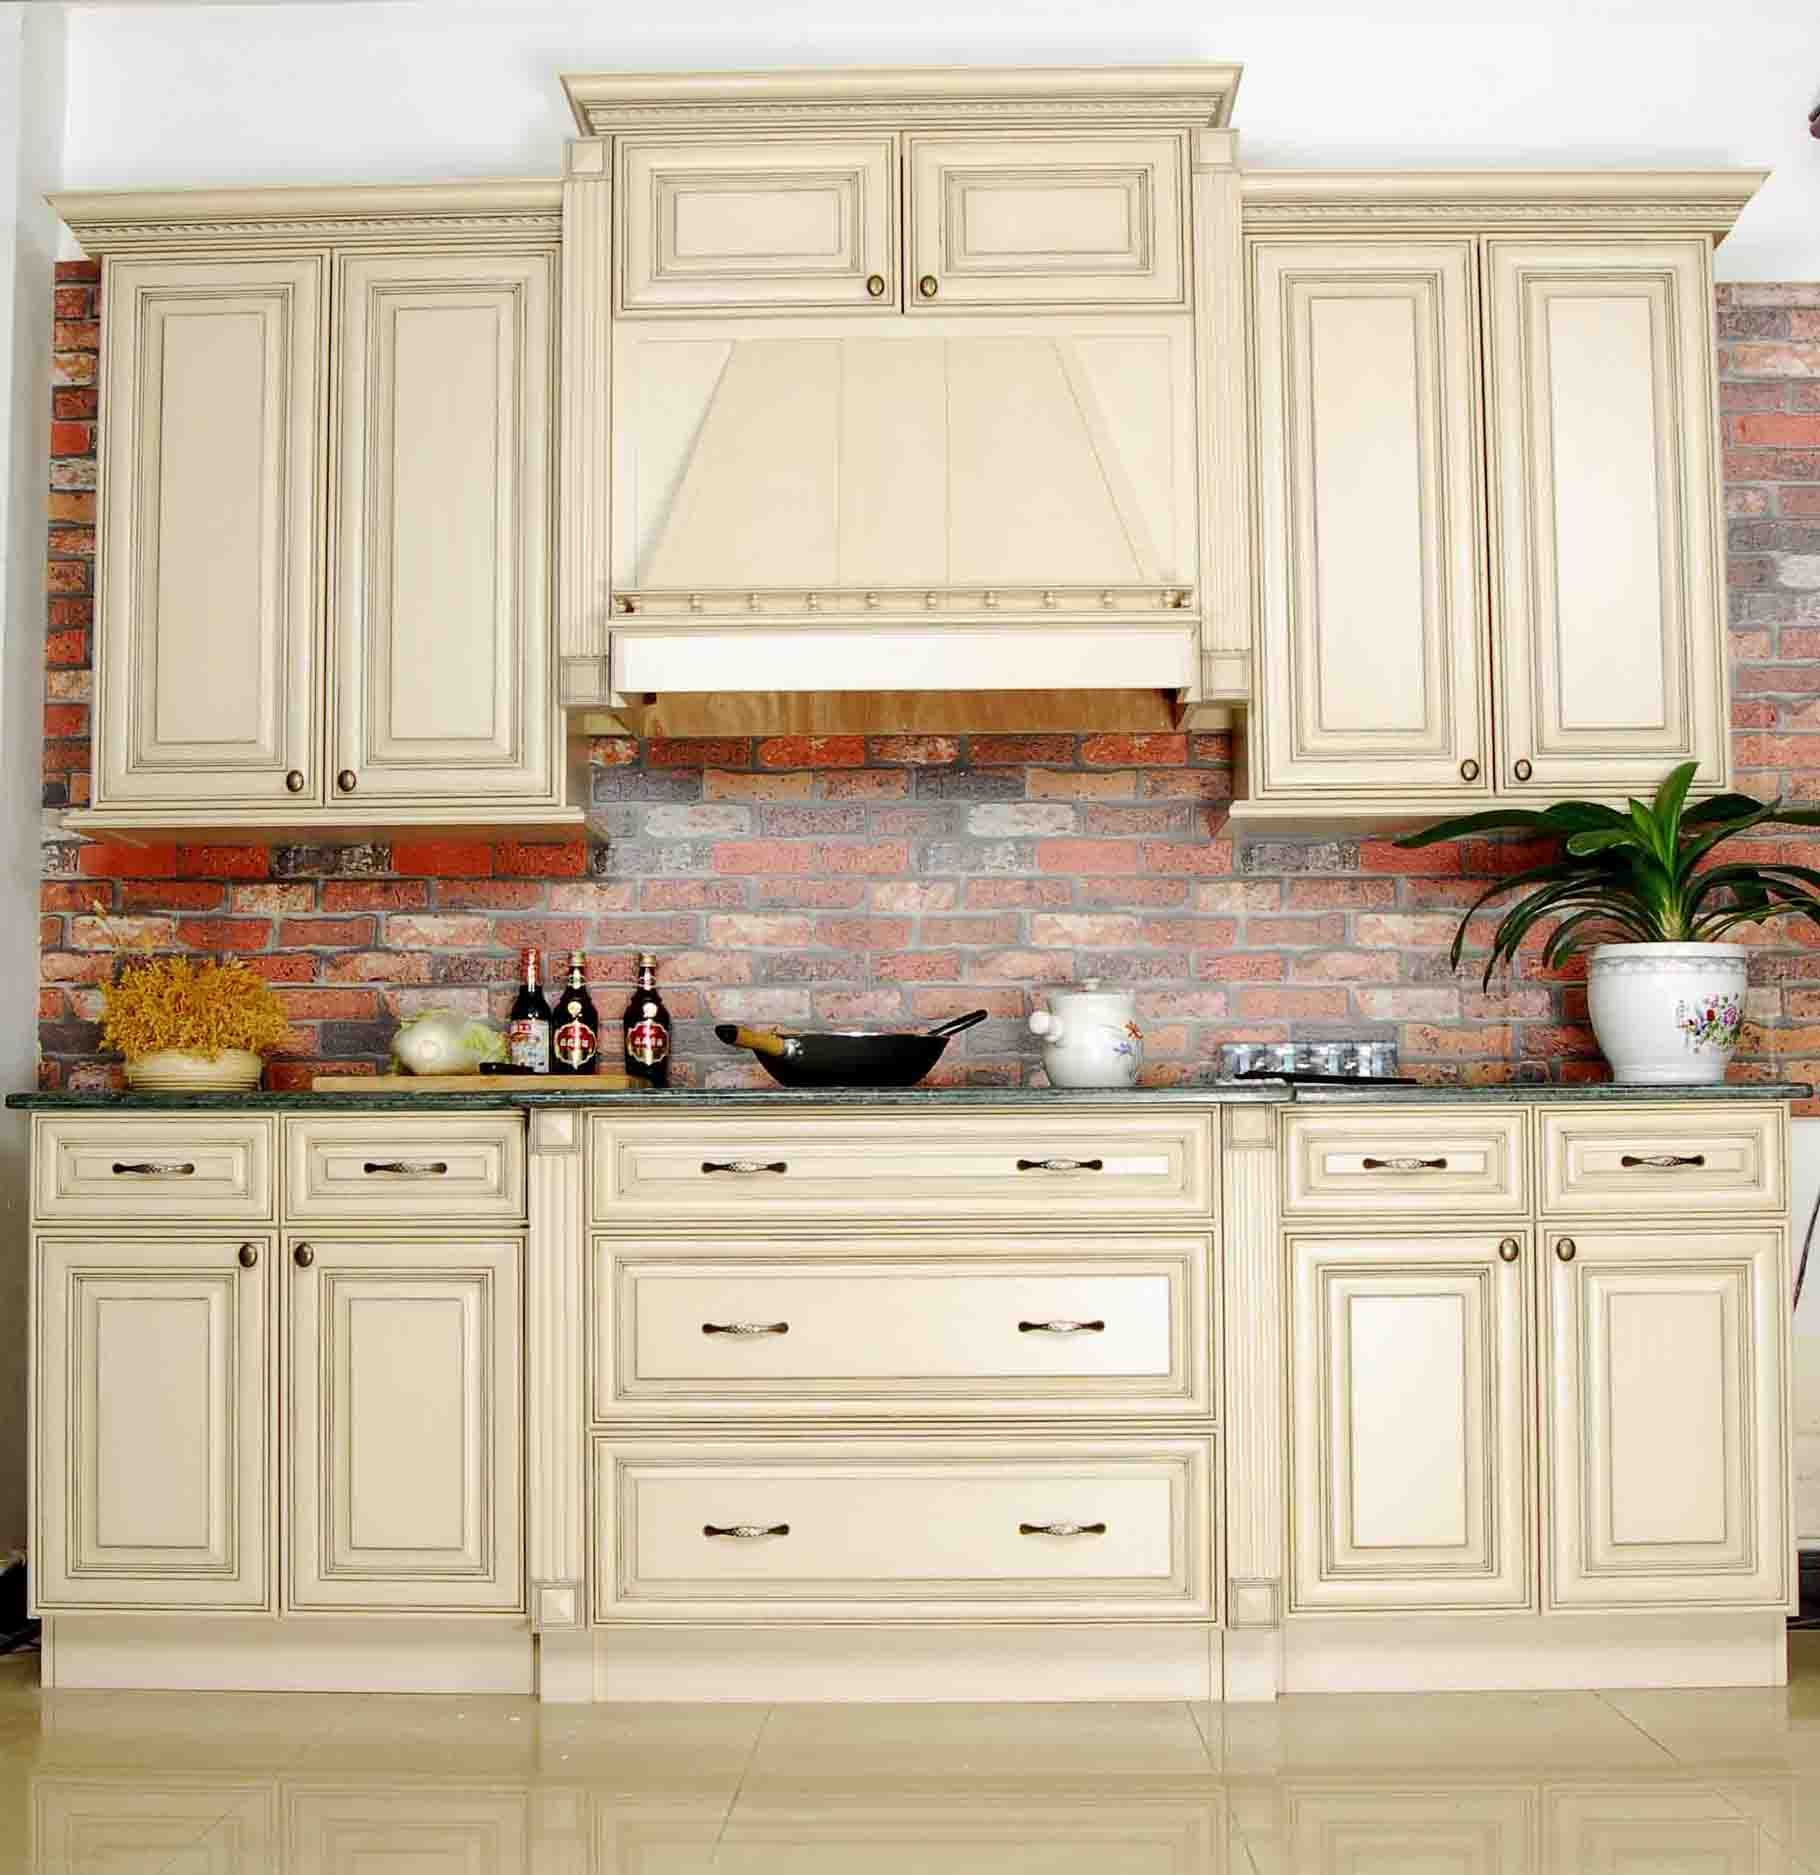 White Kitchen Cabinet Hardware: Affordable French Provincial Solid Kitchen Cabinets Ideas